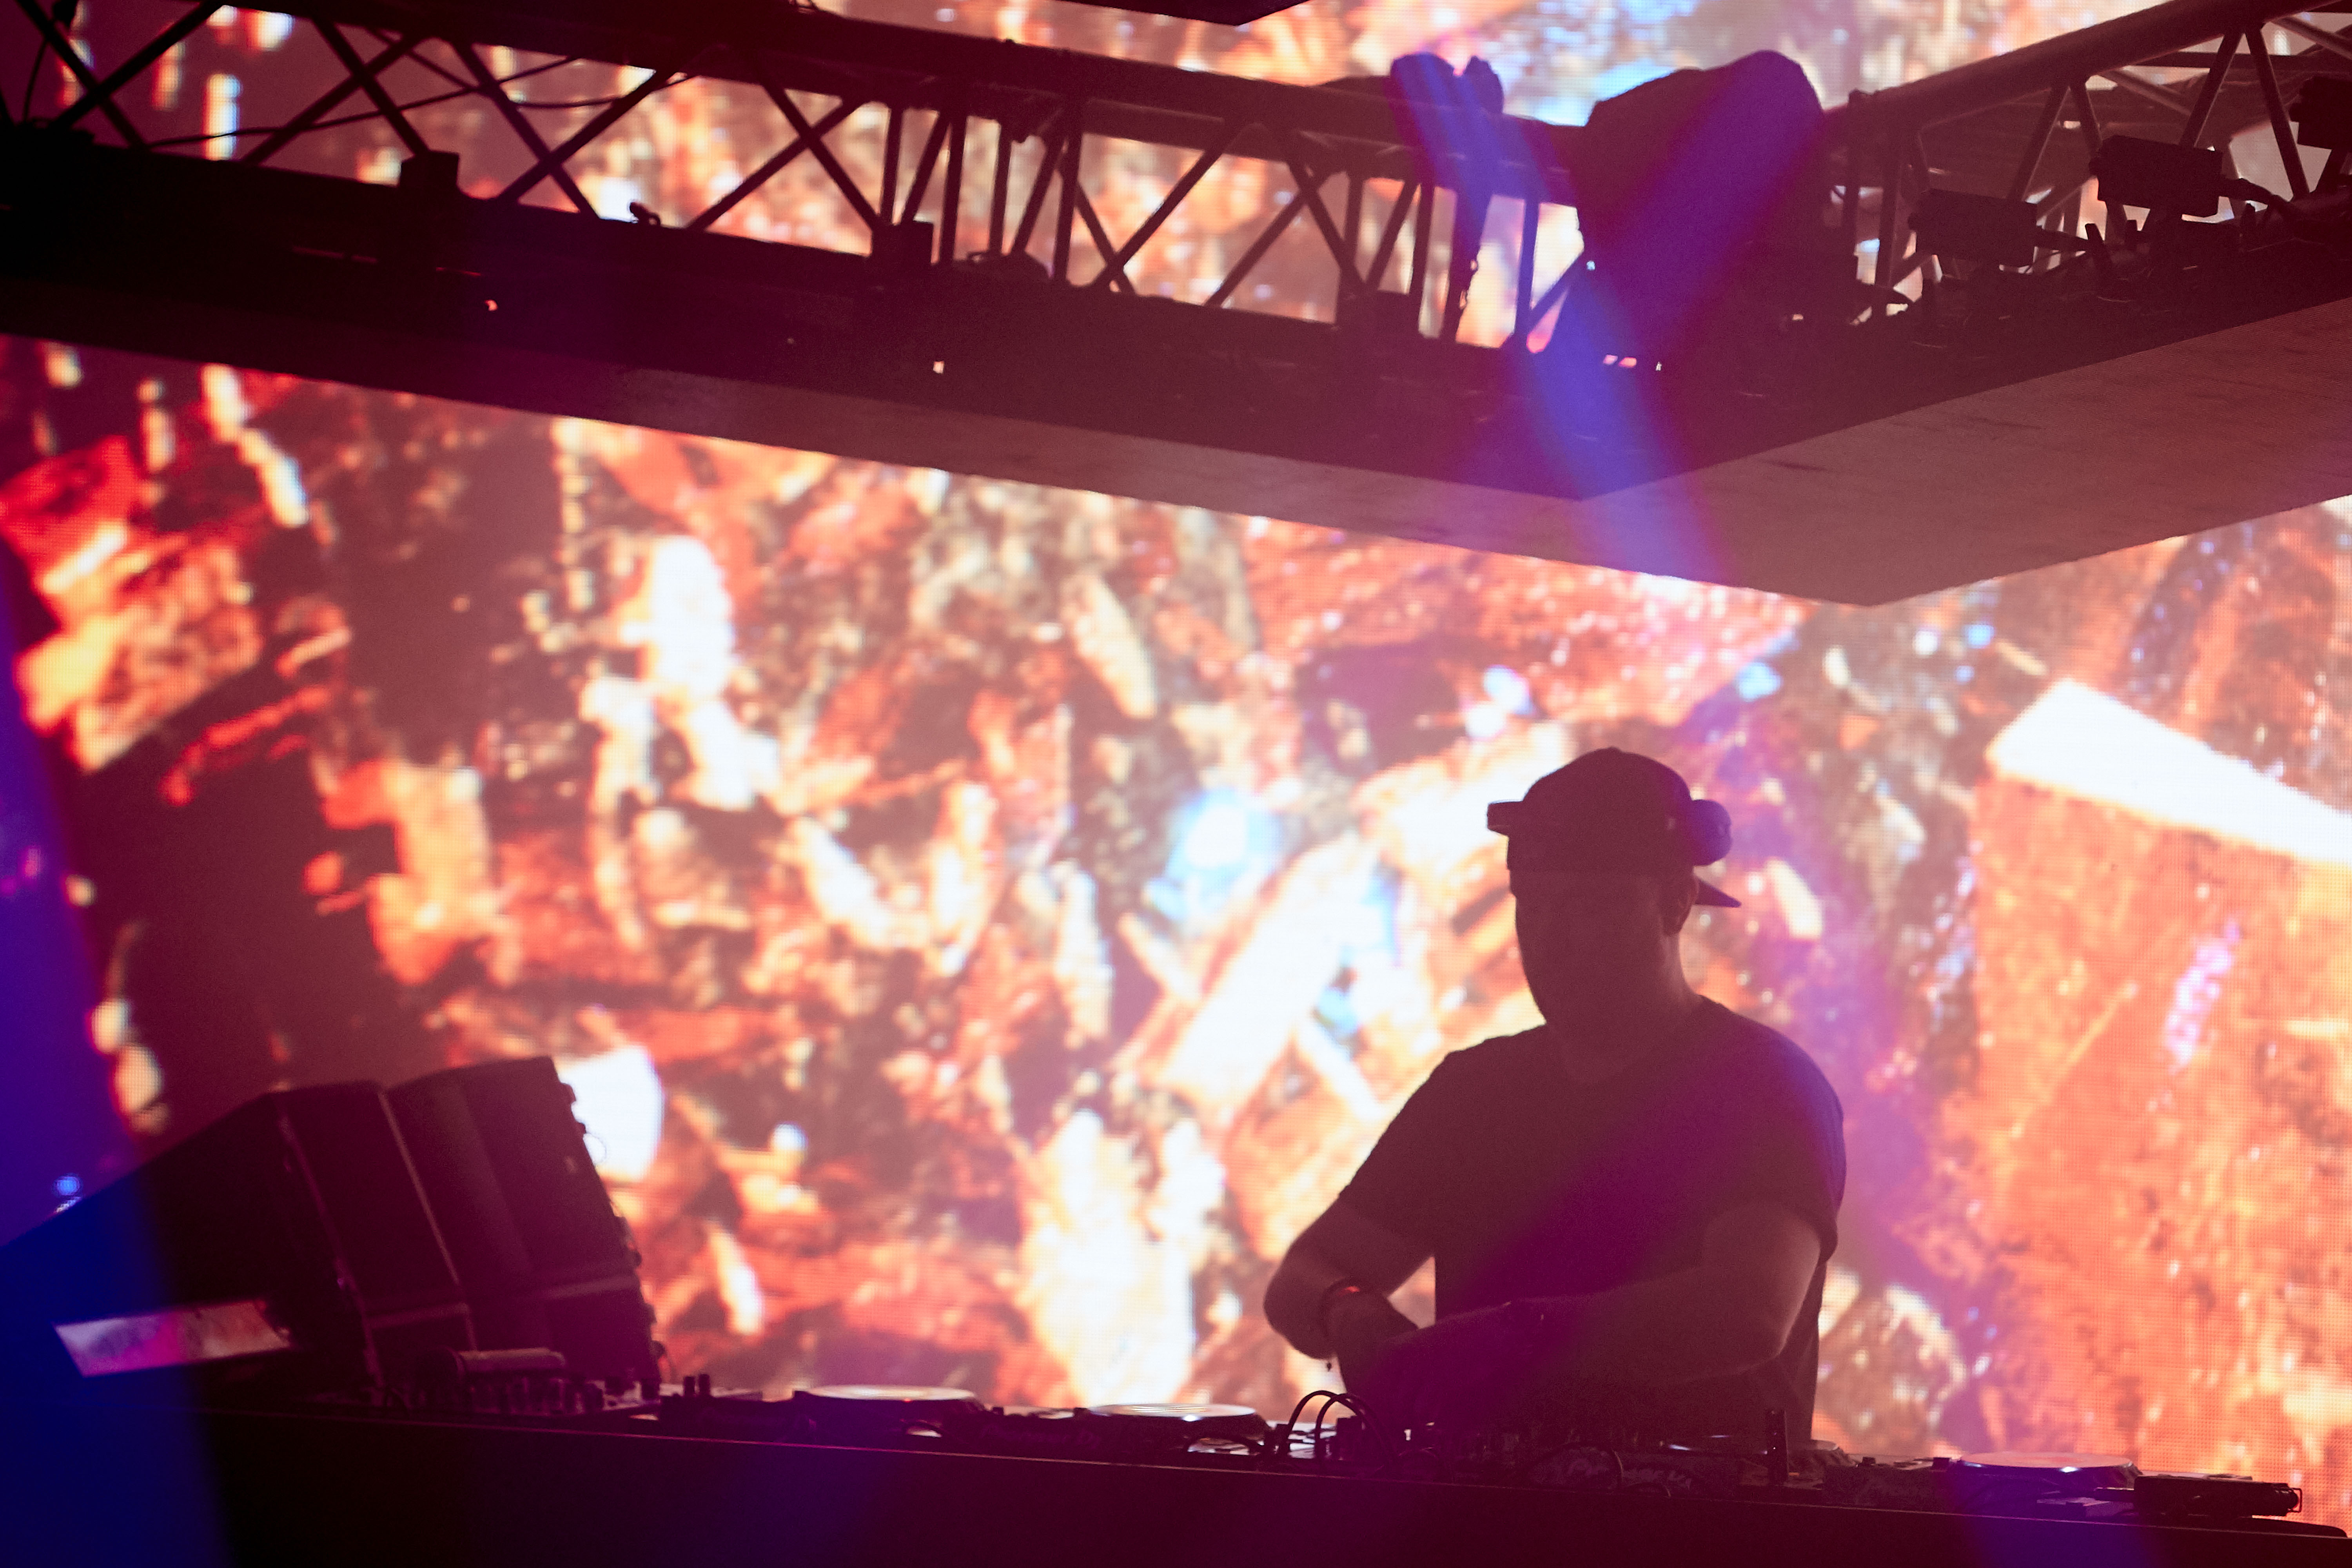 Eric Prydz and Deadmau5' party at Hï Ibiza: 20 insanely amazing snaps